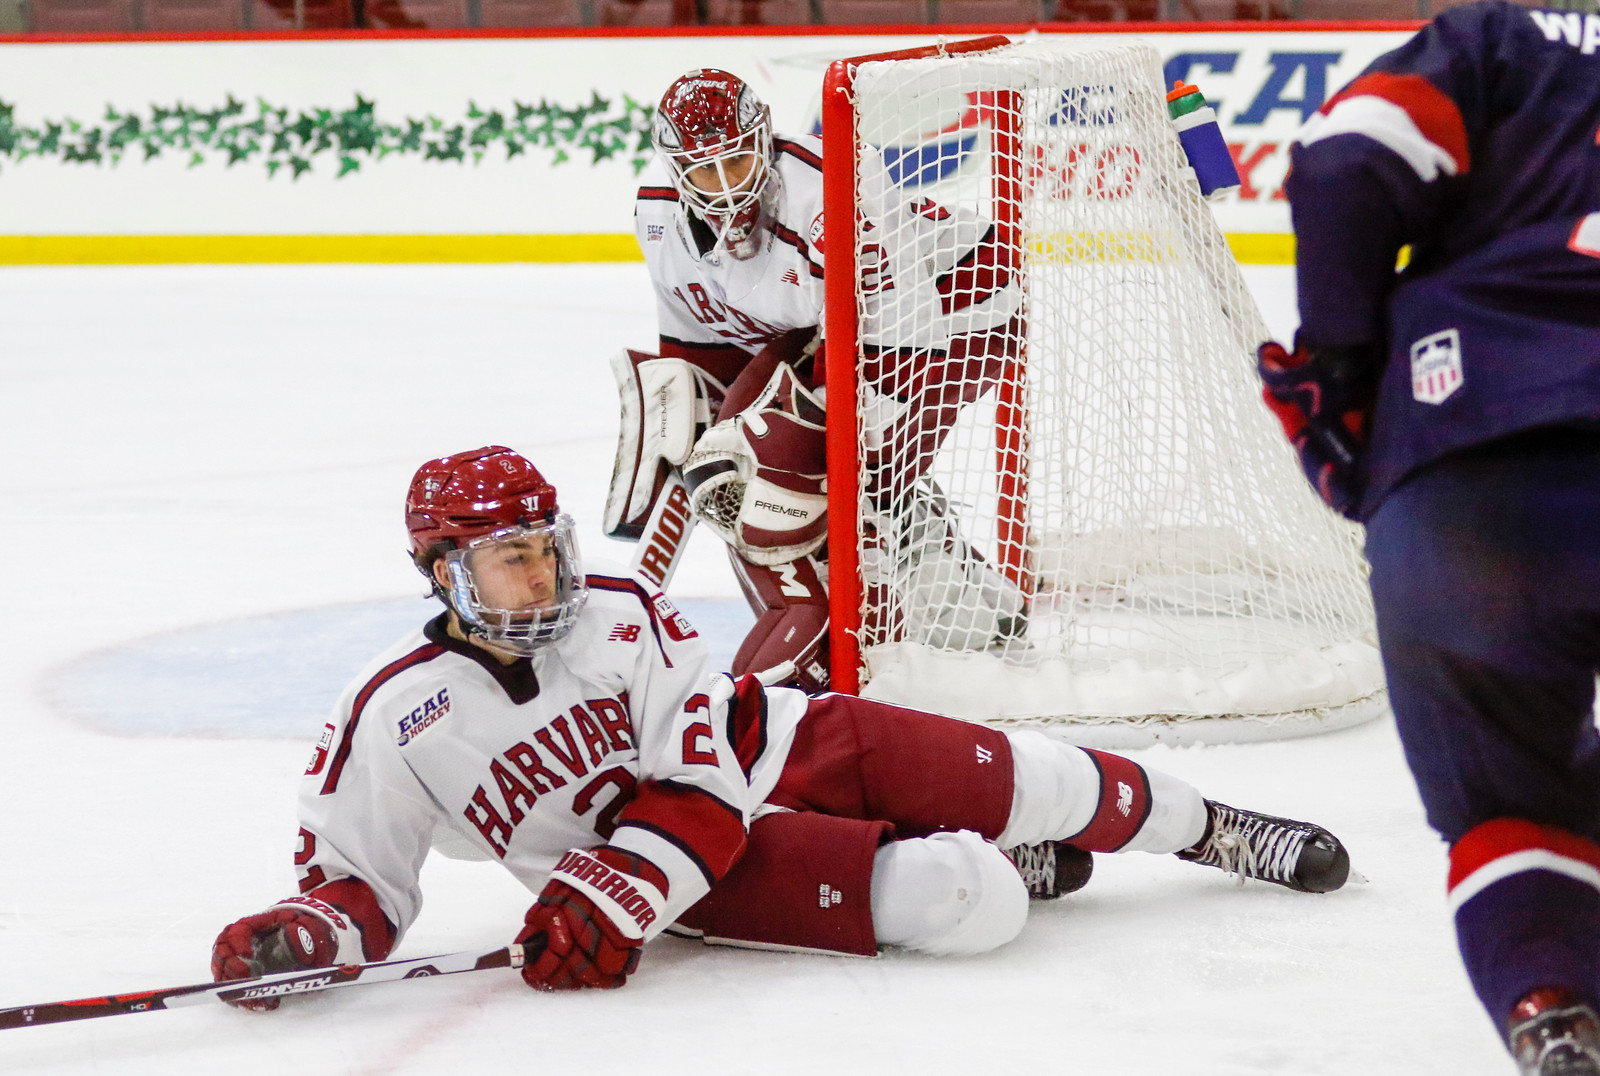 Harvard hopes to slide into its nine-game away stretch after nabbing wins against ECAC foes Yale and Brown this weekend. For the Crimson, not only the four points are on the line, as this weekend is the last chance the team gets to shore up its play before hitting the road.